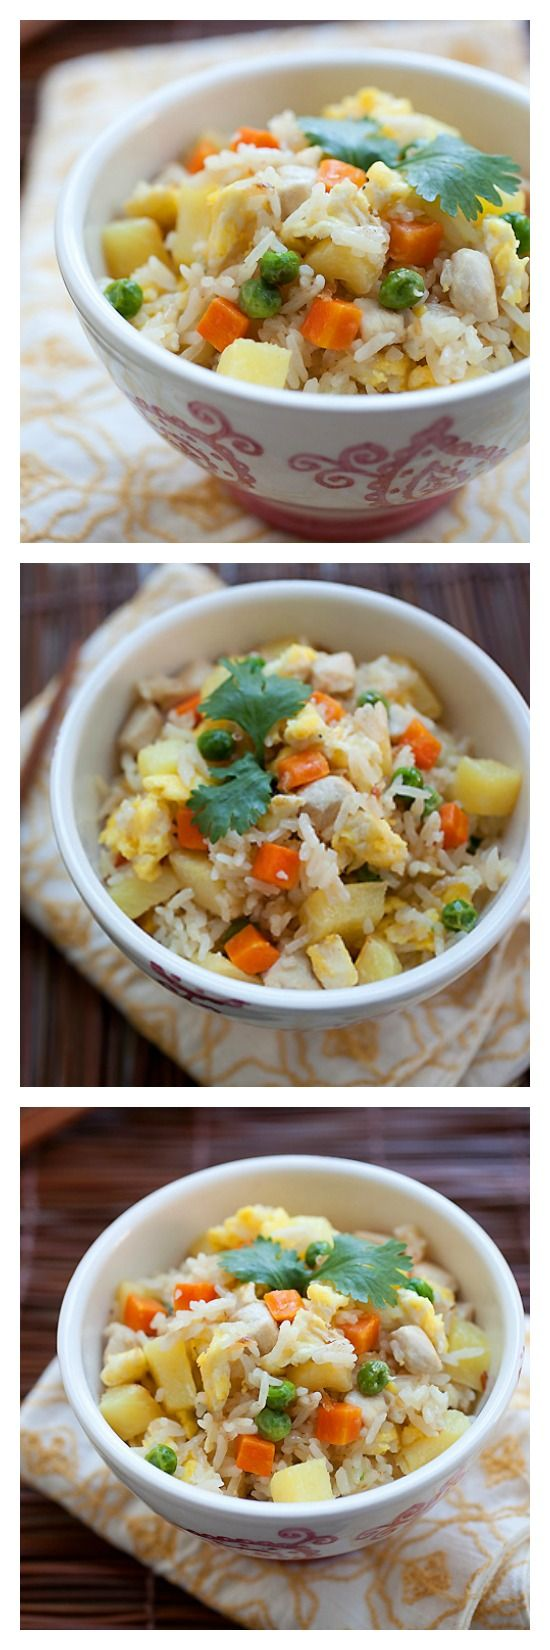 Chicken and Pineapple Fried Rice – this Thai-inspired fried rice recipe is scrumptious, quick, easy and takes 20 minutes. A great recipe for the family! | rasamalaysia.com